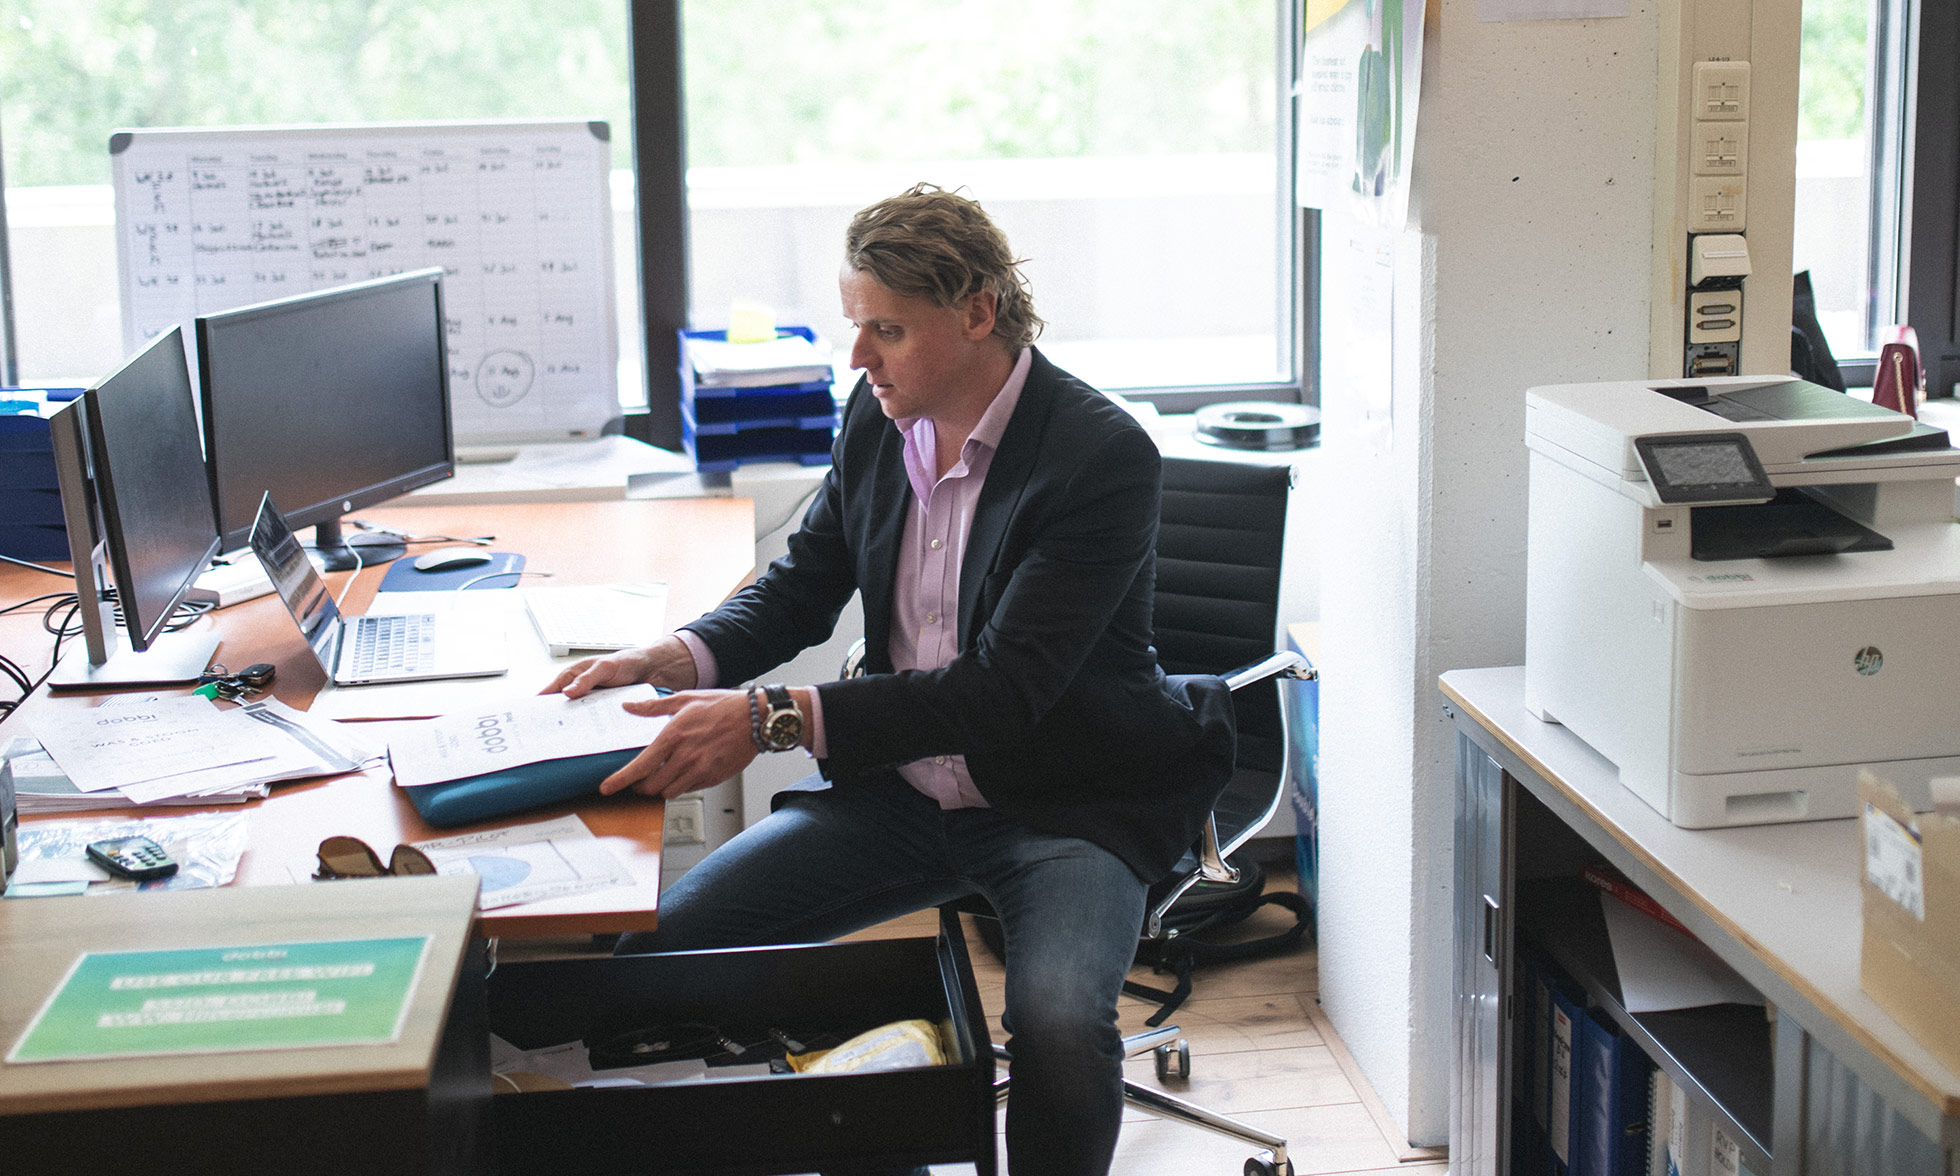 Dobbi founder Maurits Tiethoff at his desk